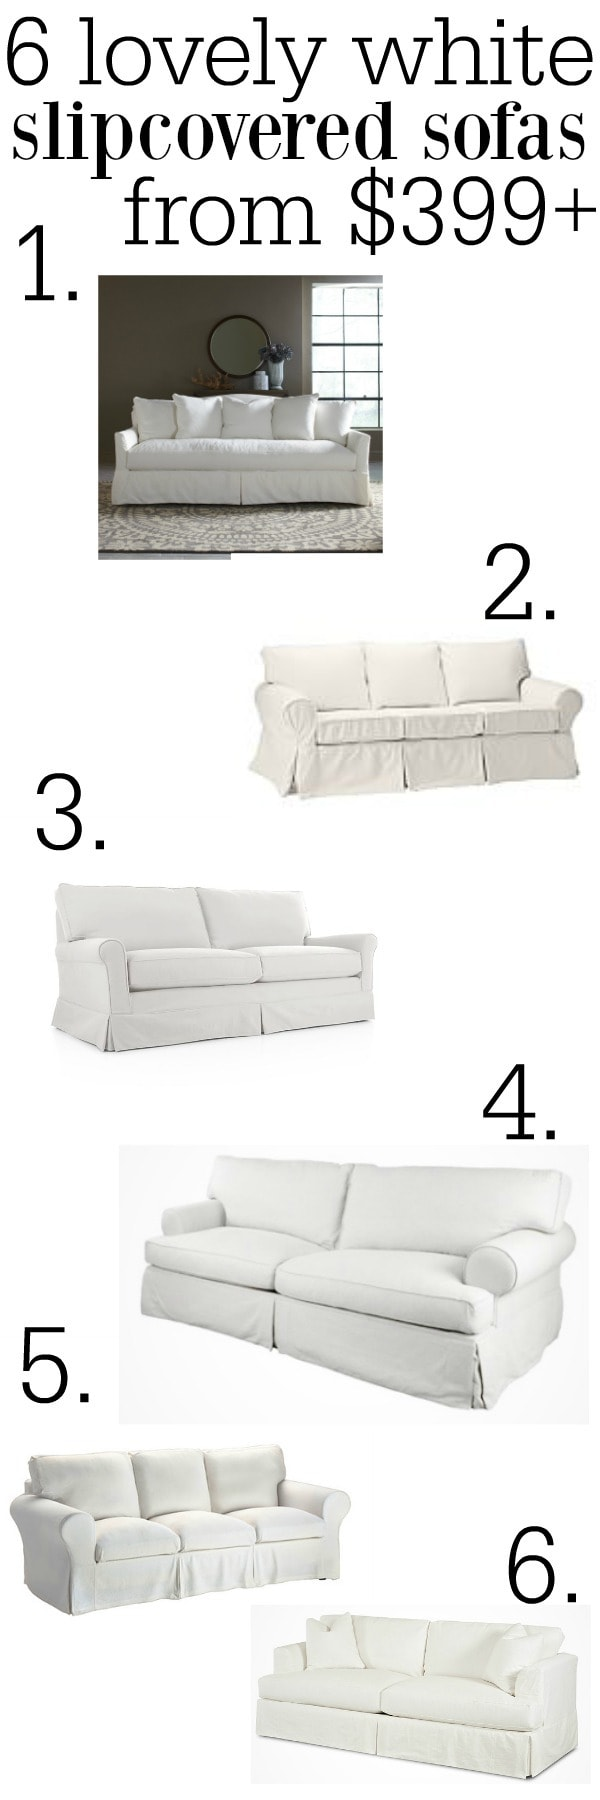 The Best White Slipcovered Sofas - Liz Marie Blog